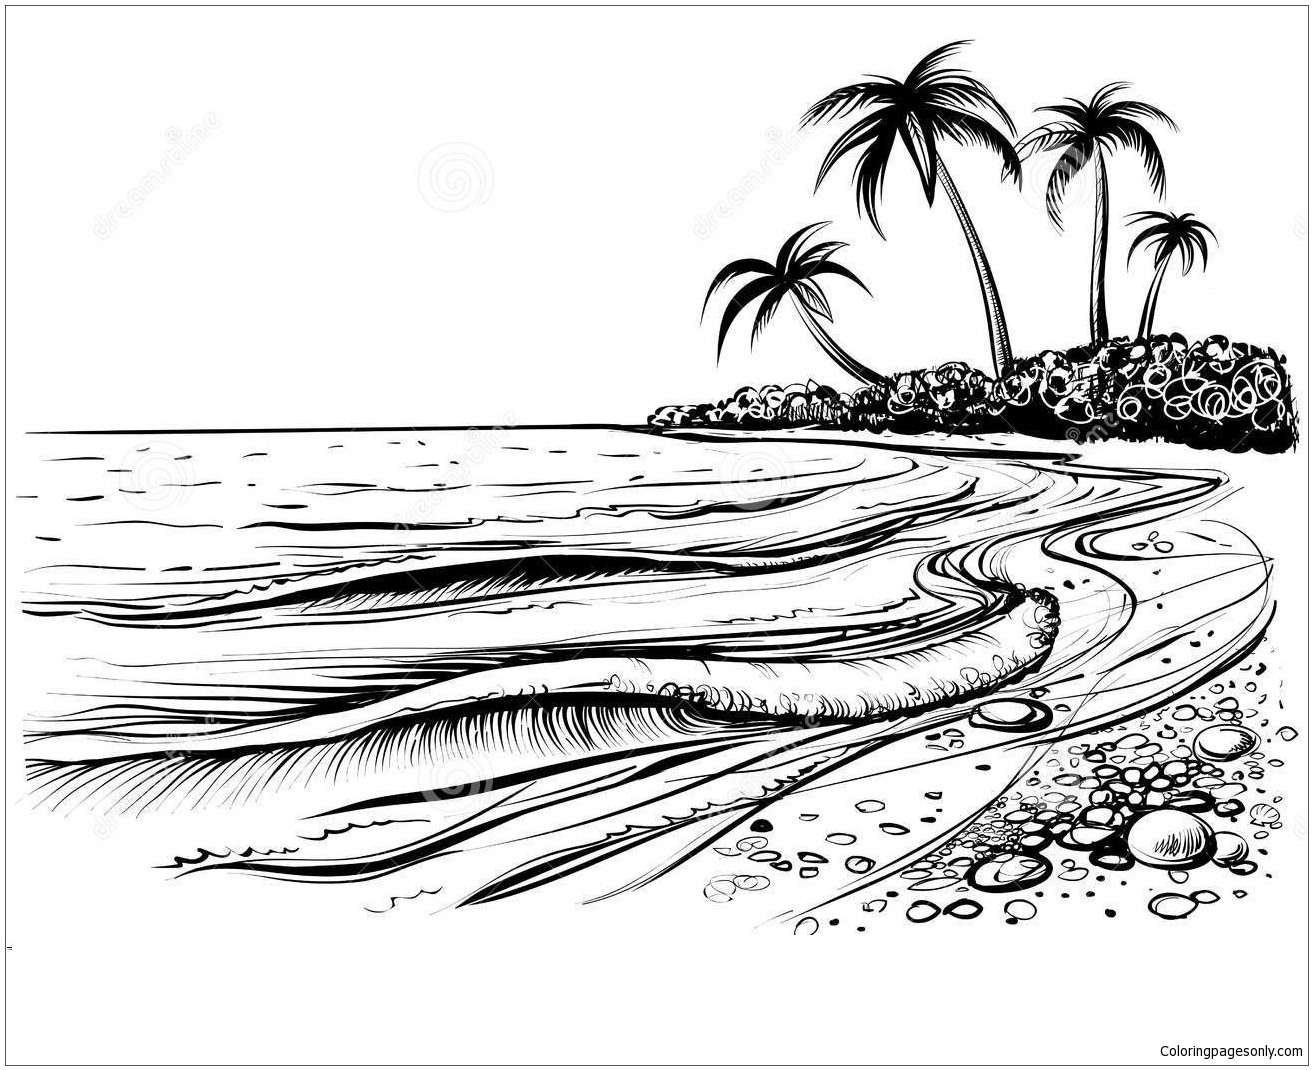 Sea Beach With Waves Coloring Page - Free Coloring Pages ...